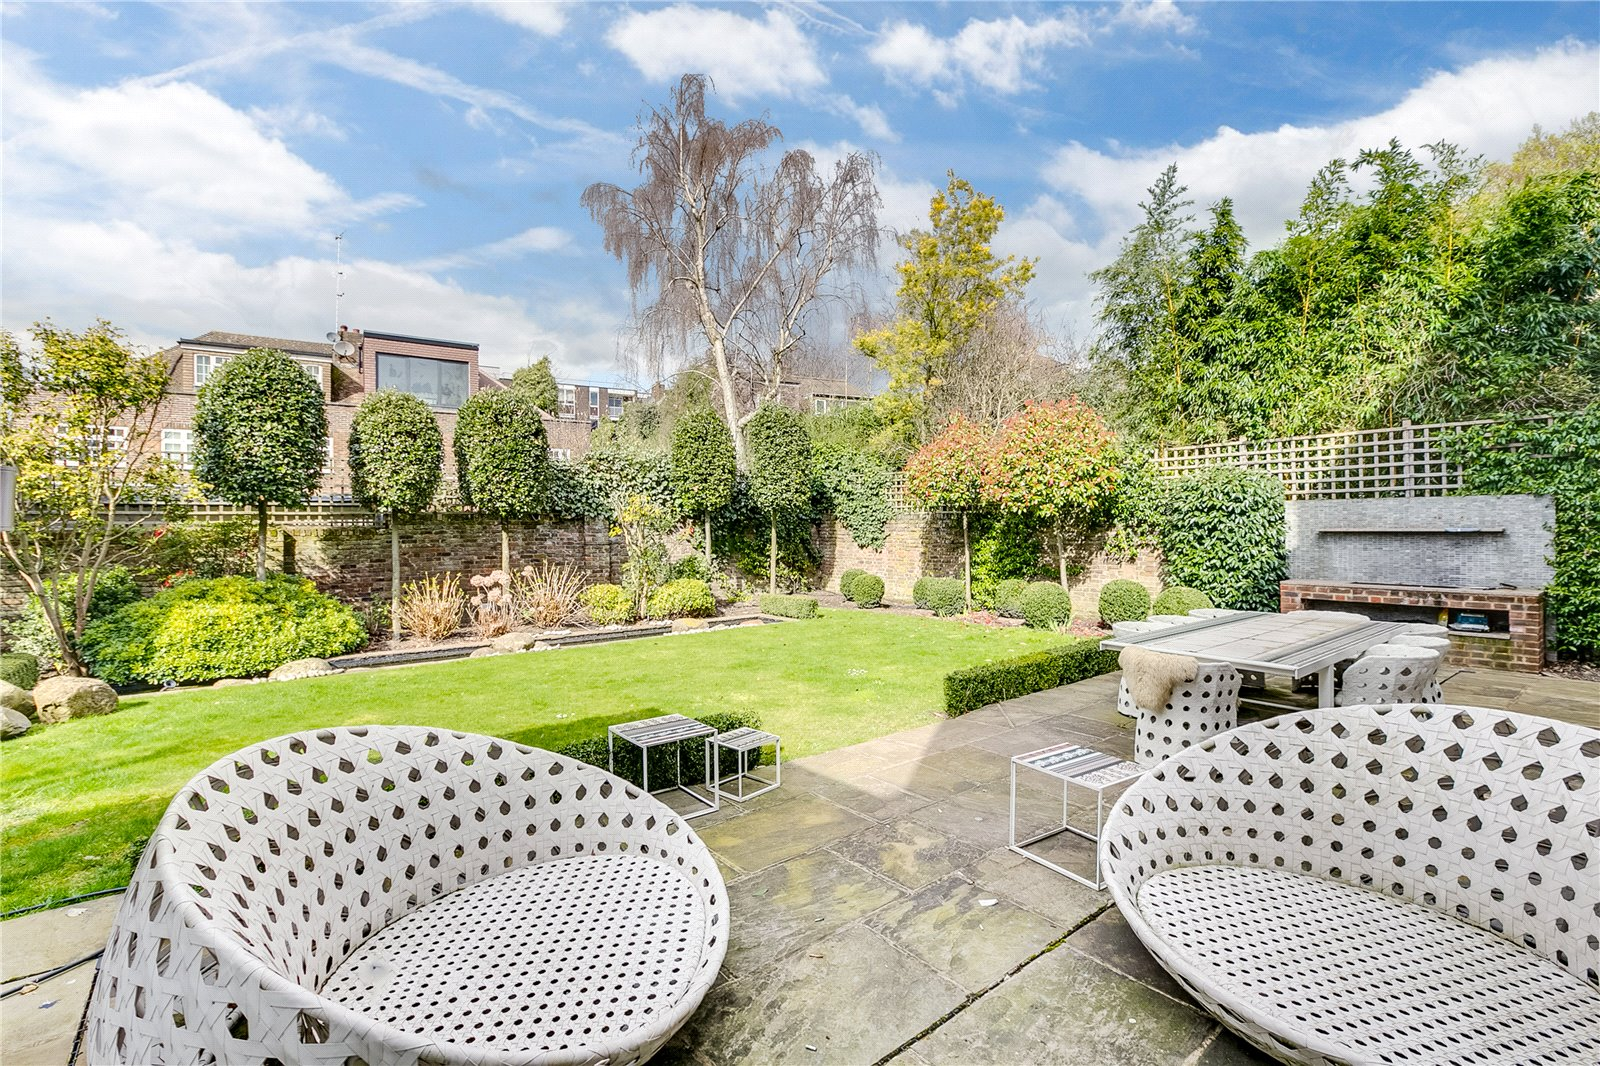 House for Rent at Springfield Road, St John's Wood, London, NW8 Springfield Road, St John's Wood, London, NW8